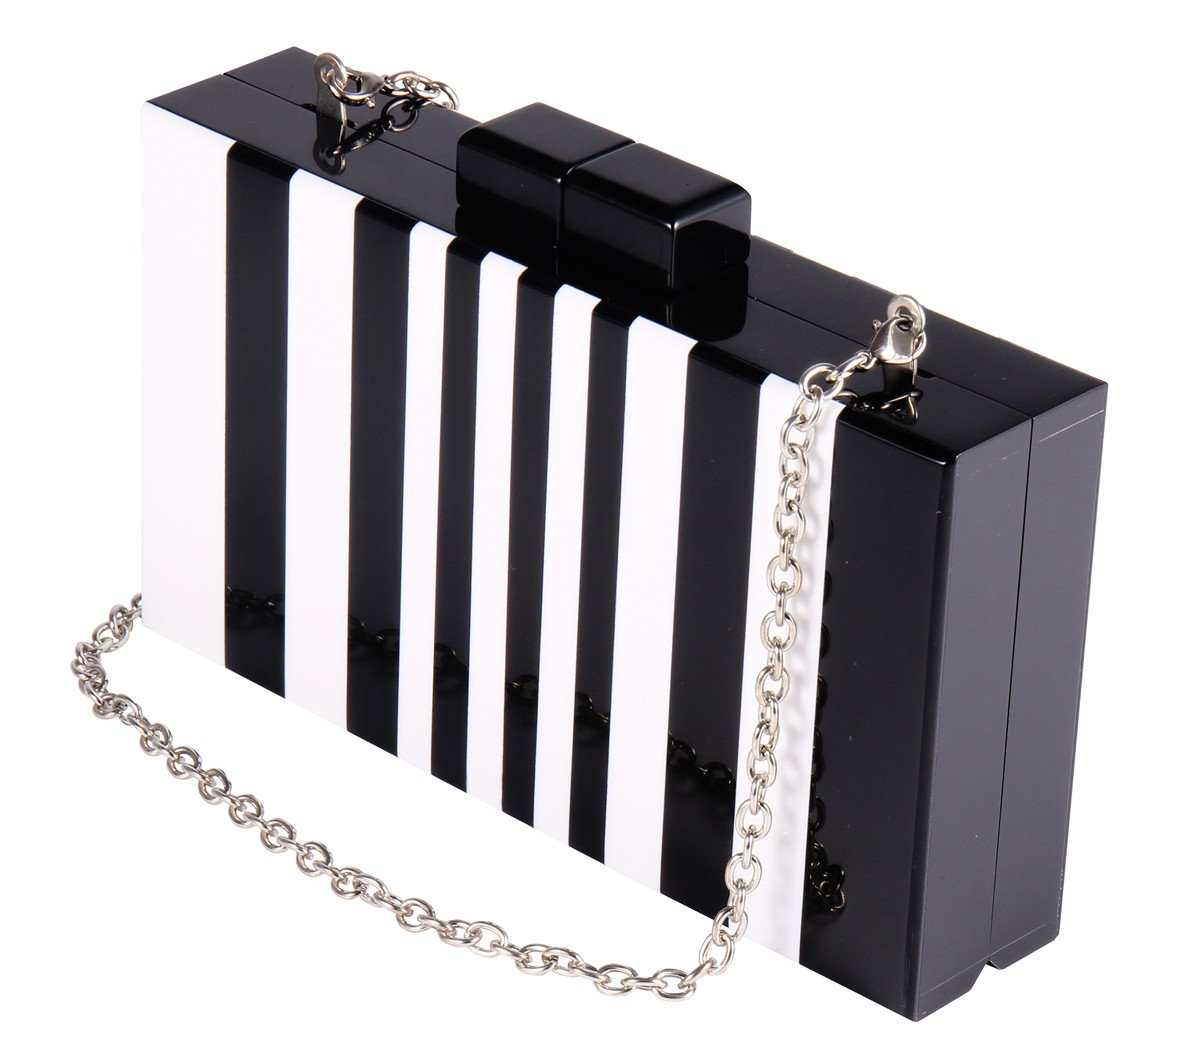 Square Acrylic Clutch Purse Piano Pattern Black and White Clutches Handbags for Women with Chain for Cocktail Banquet Wedding